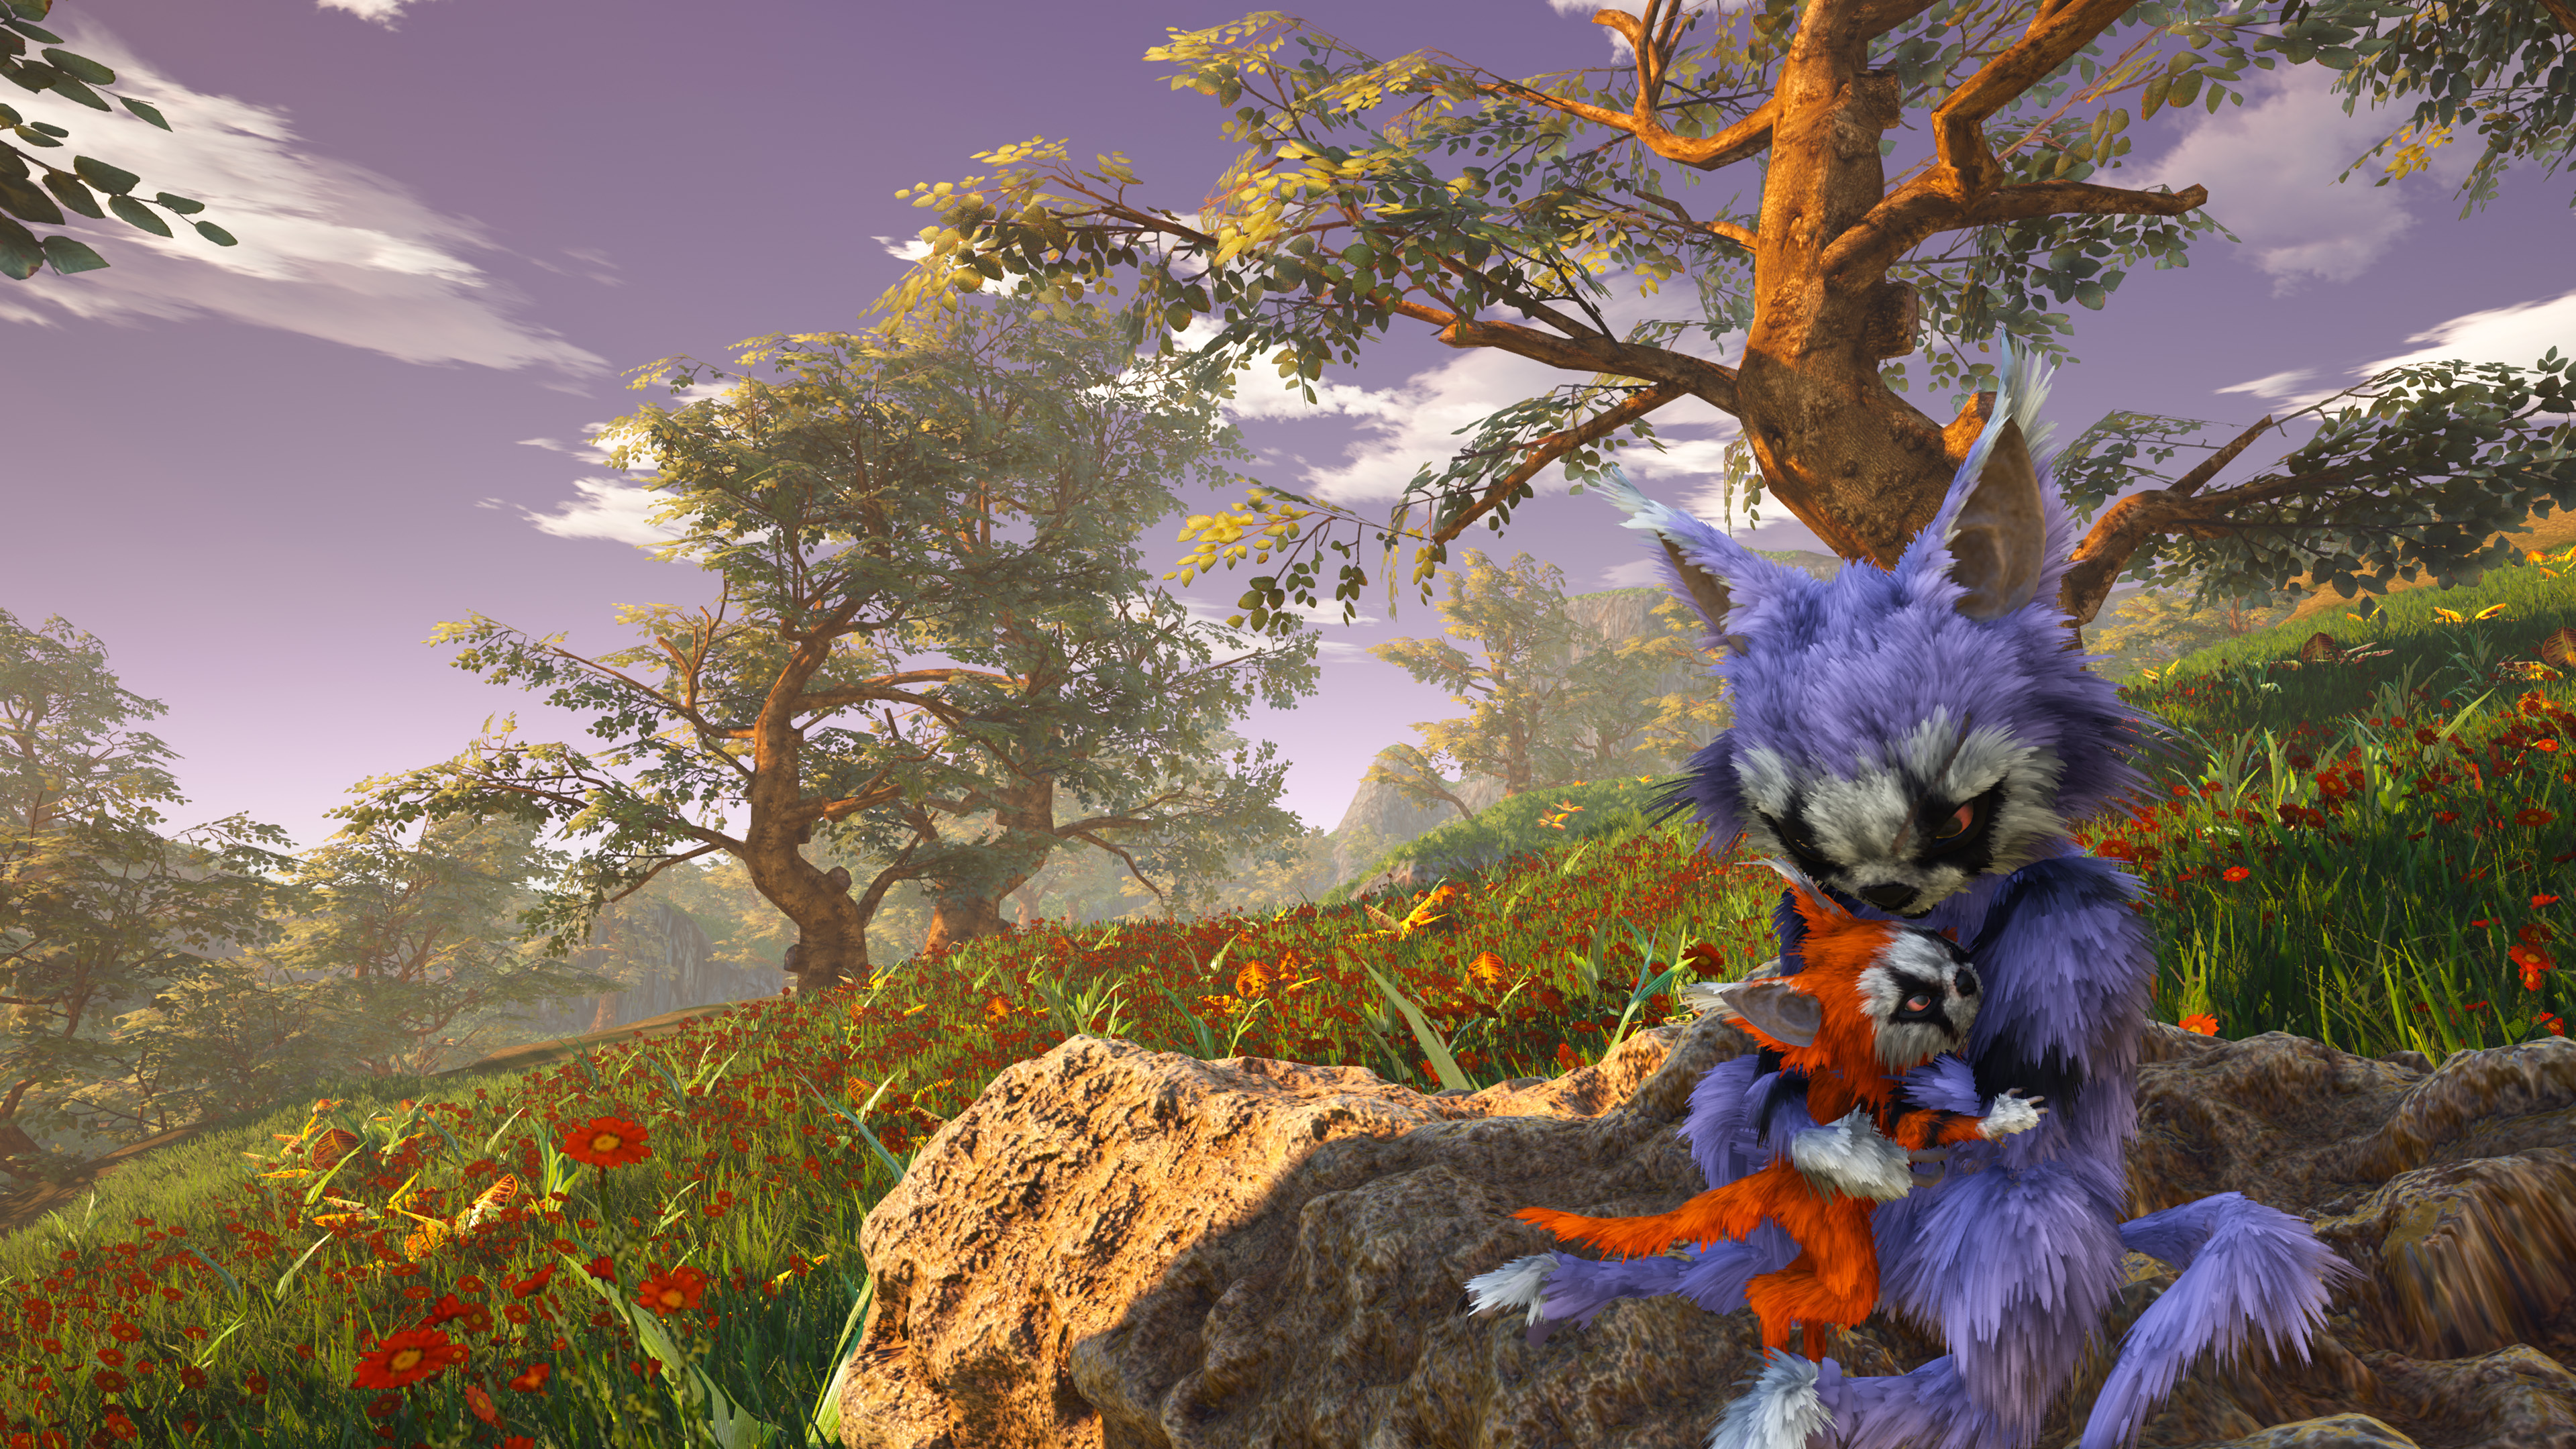 New Biomutant Gameplay Released; Shows Of Weapons And Endgame Results